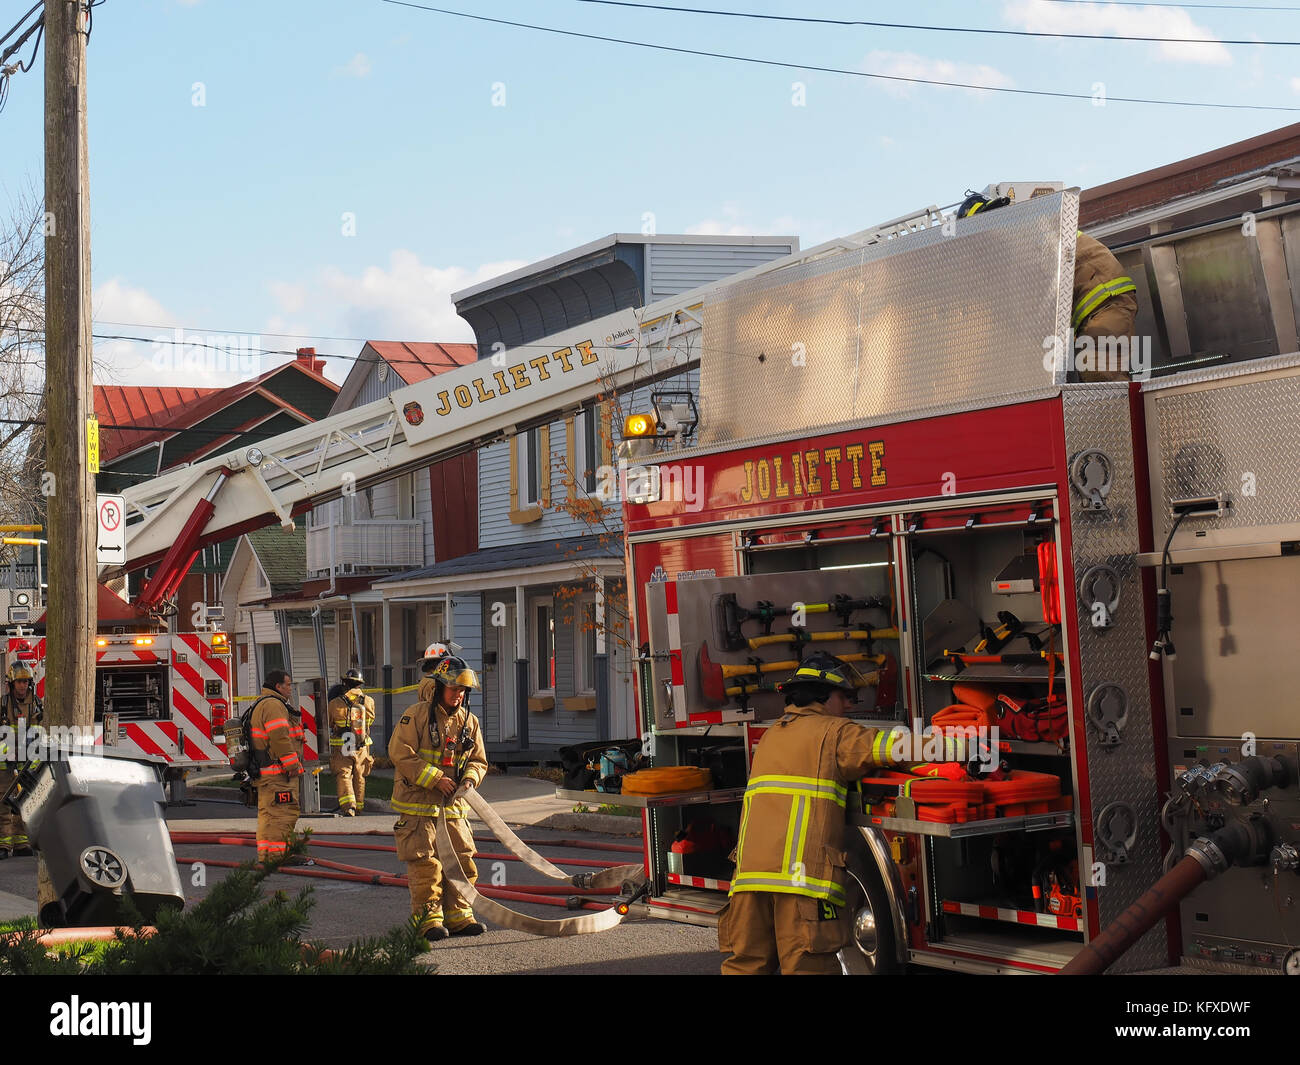 Firemen rolling up their hoses at the scene of a building fire in Joliette, Quebec, canada - Stock Image